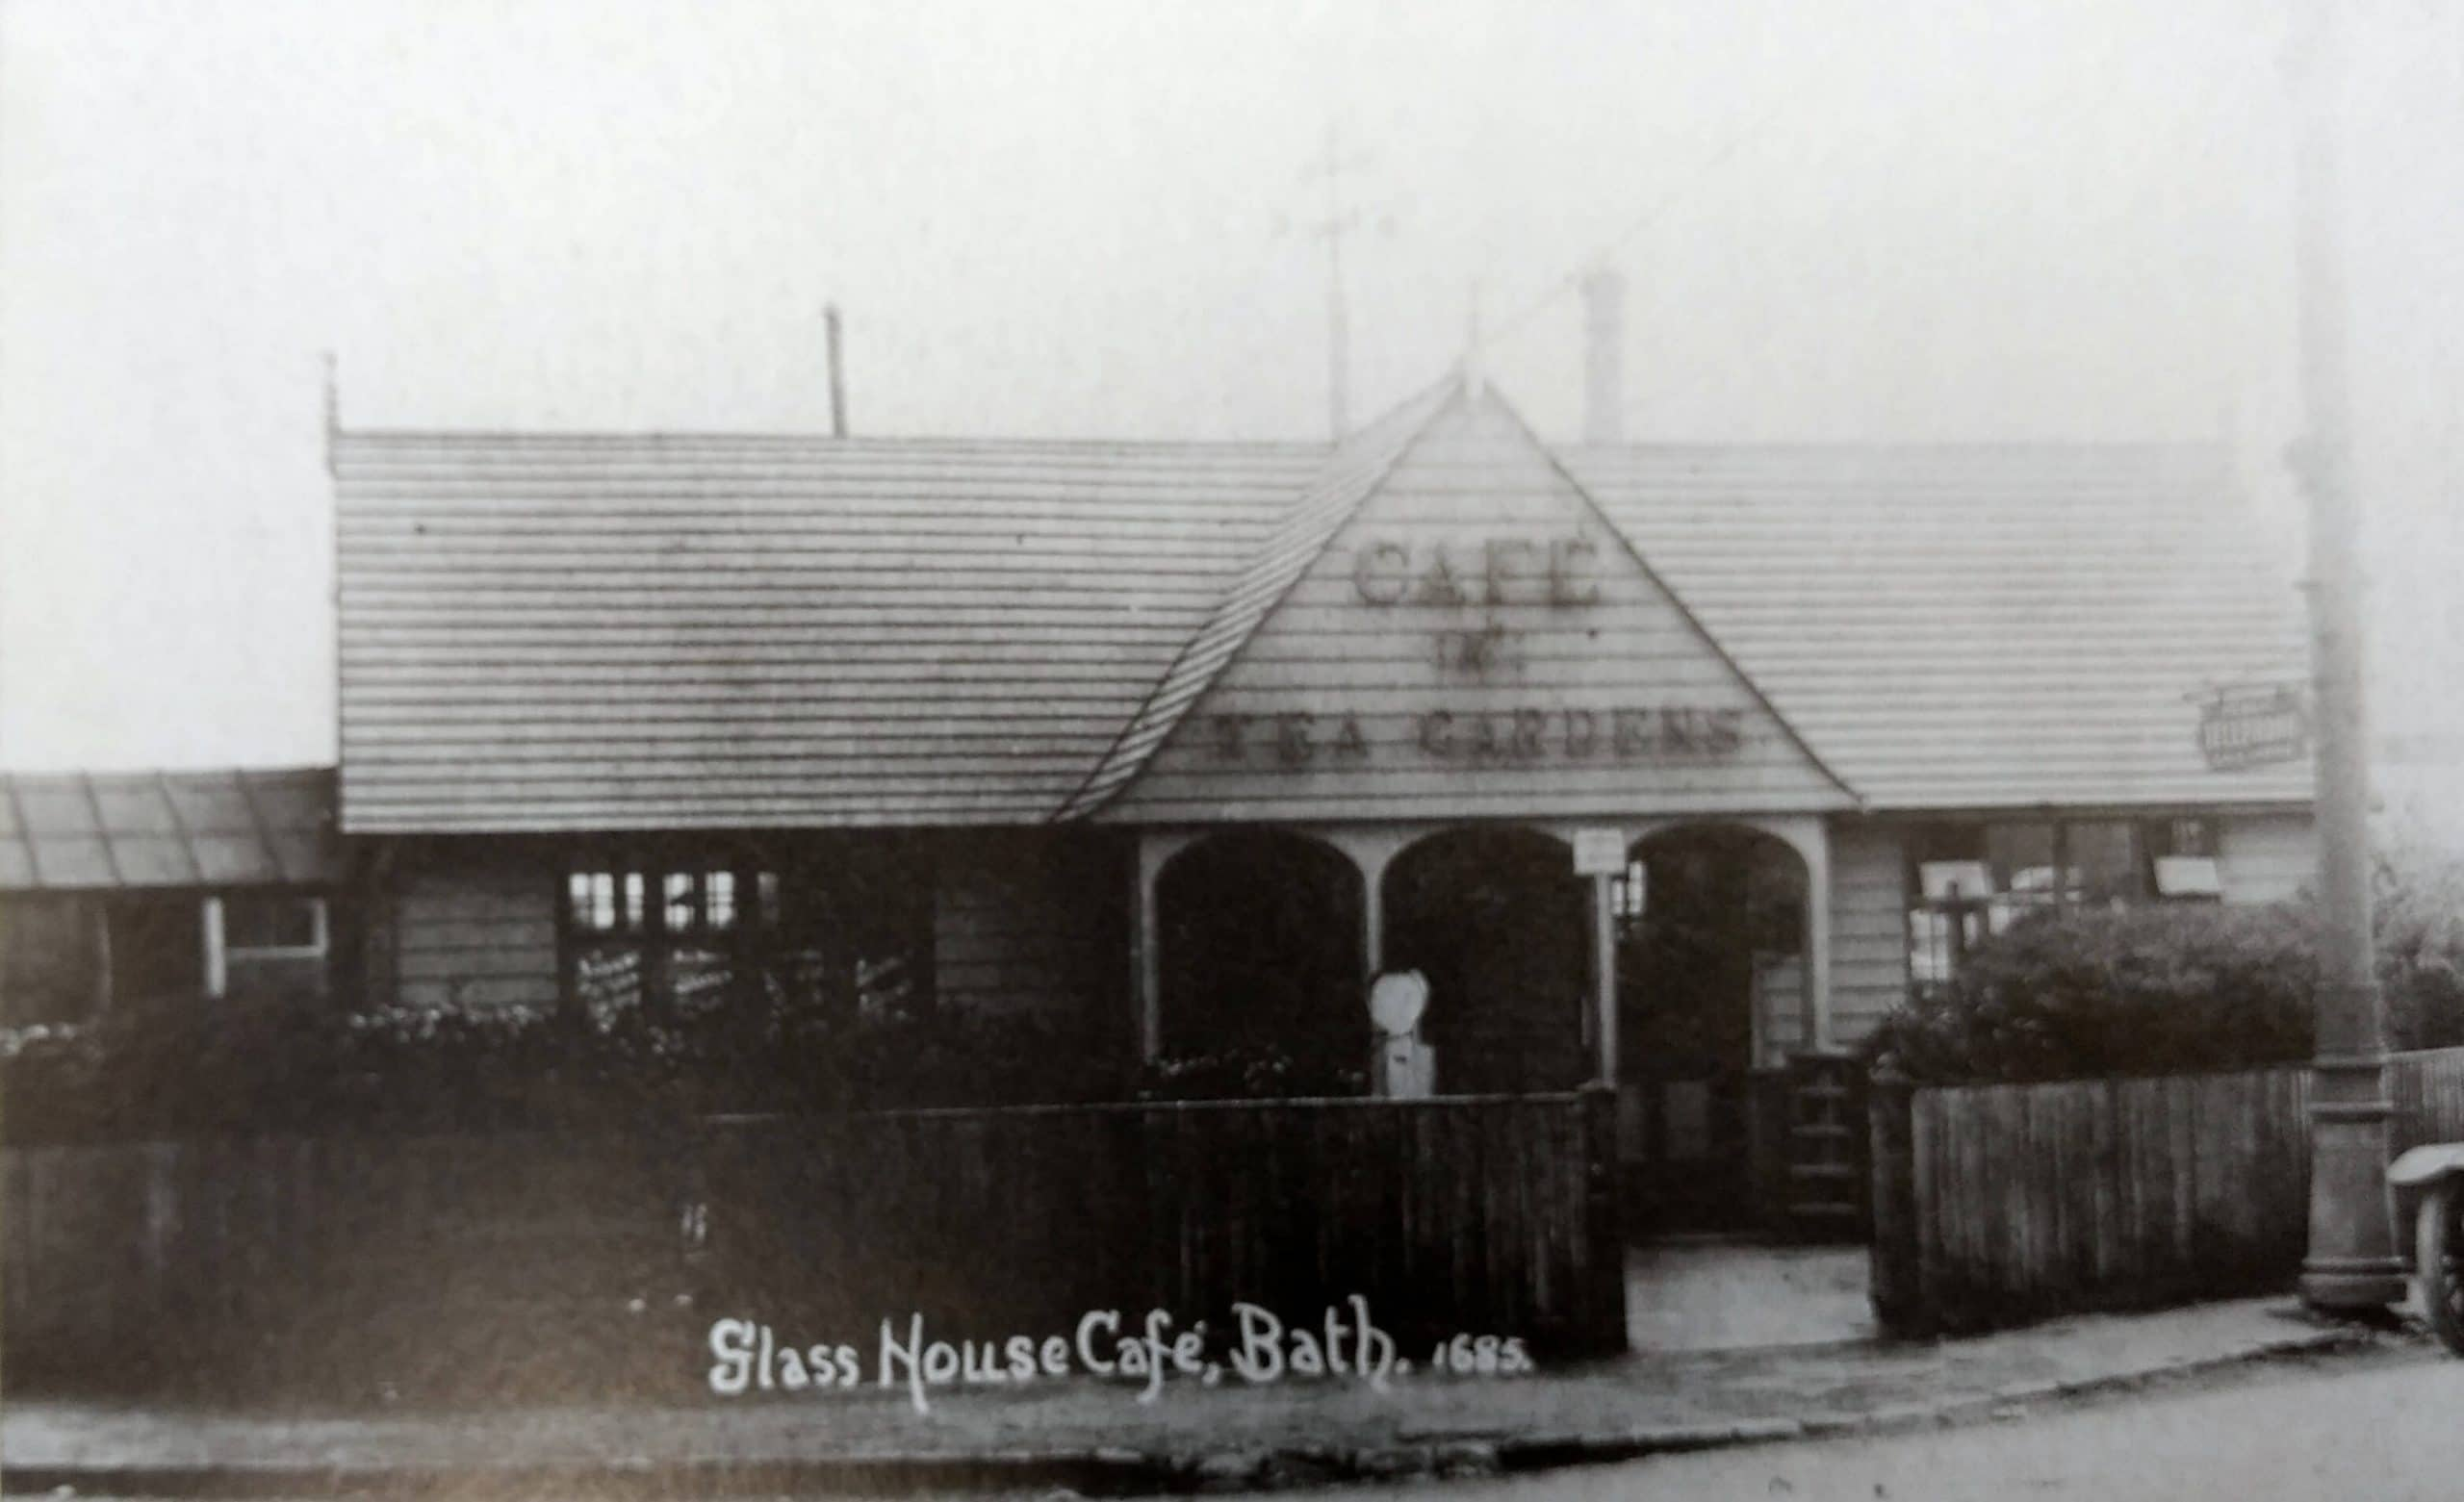 Glasshouse cafe, Combe Down about 1915